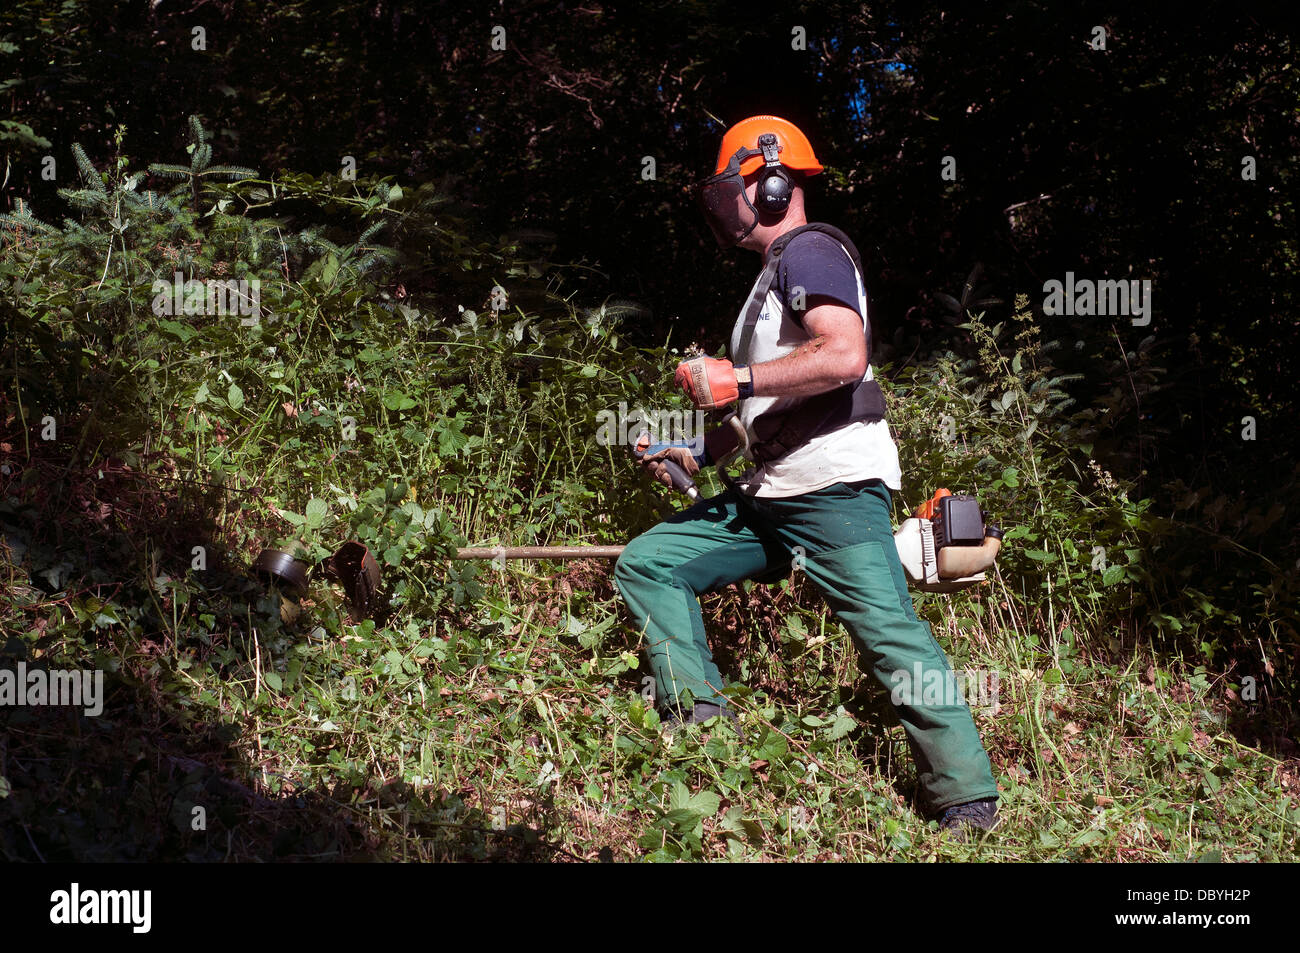 strimming,safety equipment,strimmer,strimmers, backyard, blue, close-up, color, cord, cutter, cutting, day, edger, - Stock Image